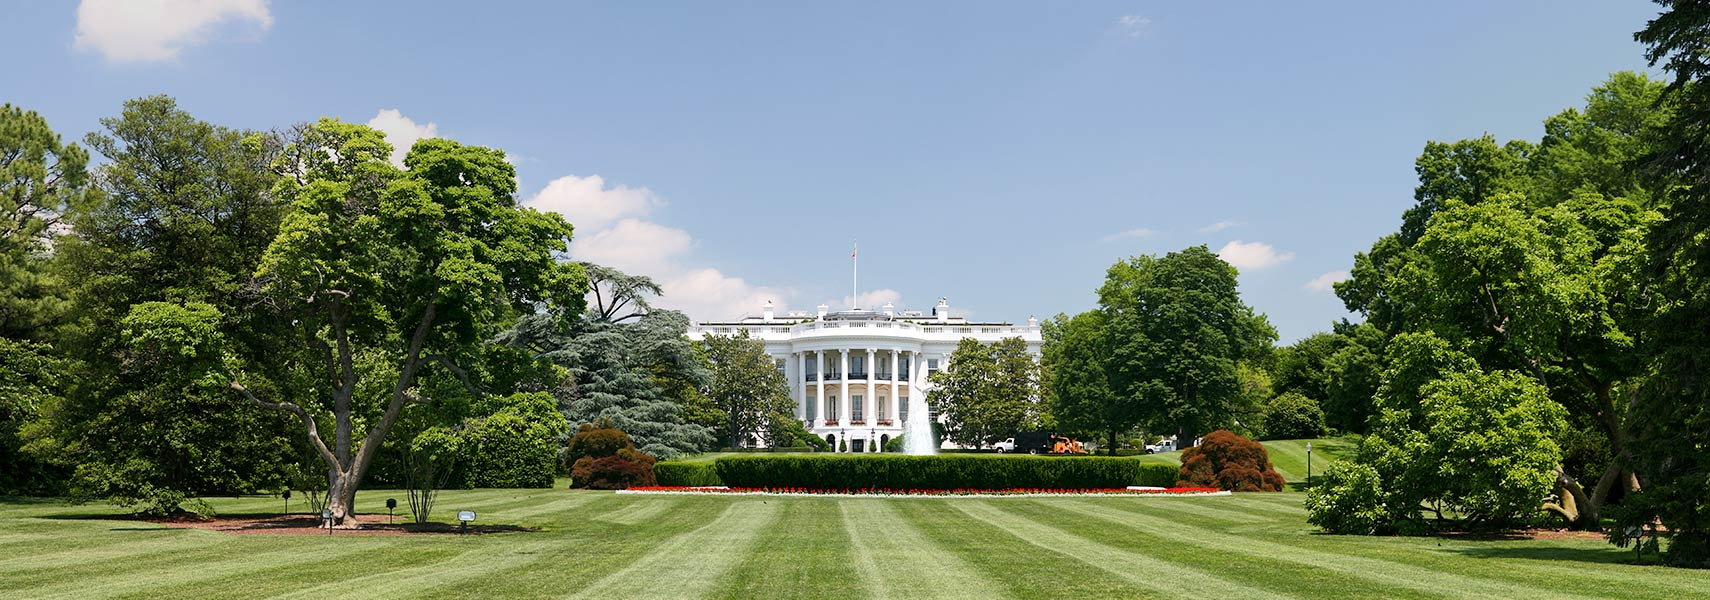 The White House, southern facade and lawn